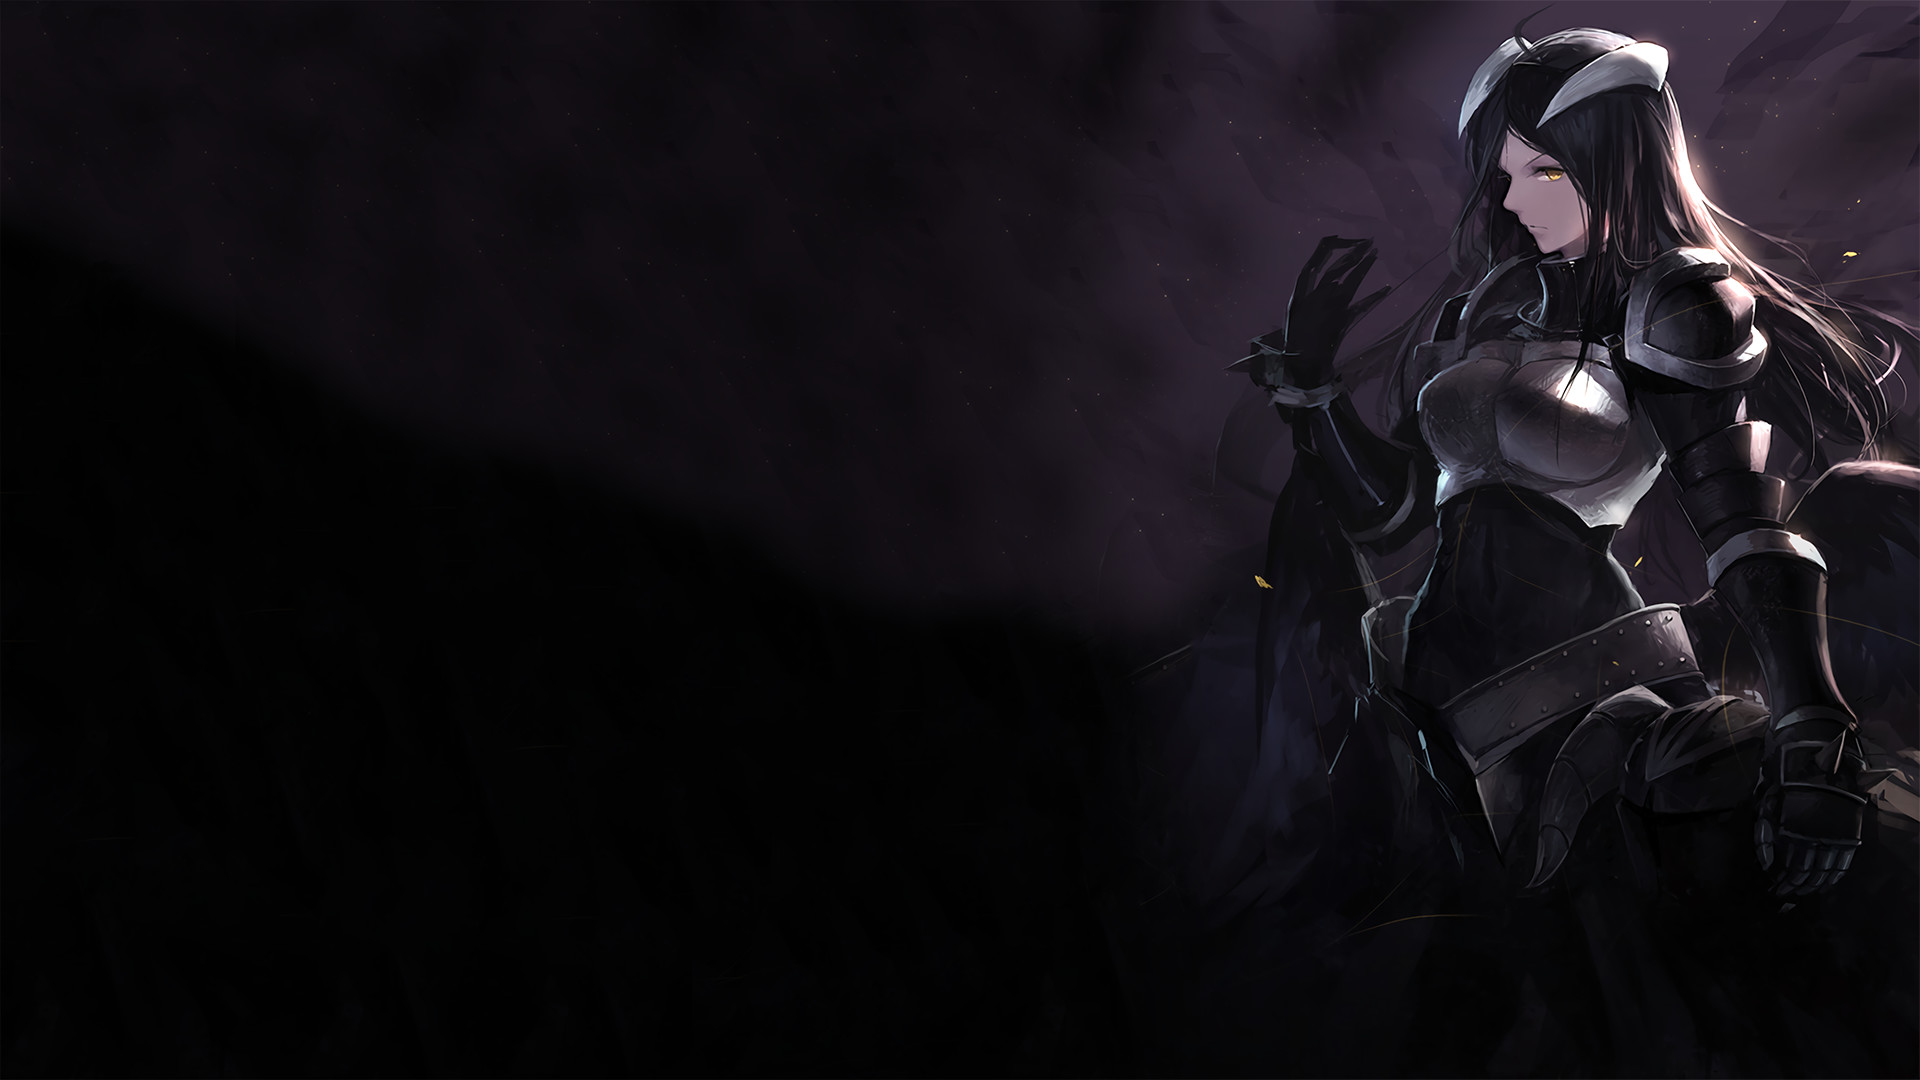 Res: 1920x1080, Overlord: Albedo () HD Wallpaper From Gallsource.com